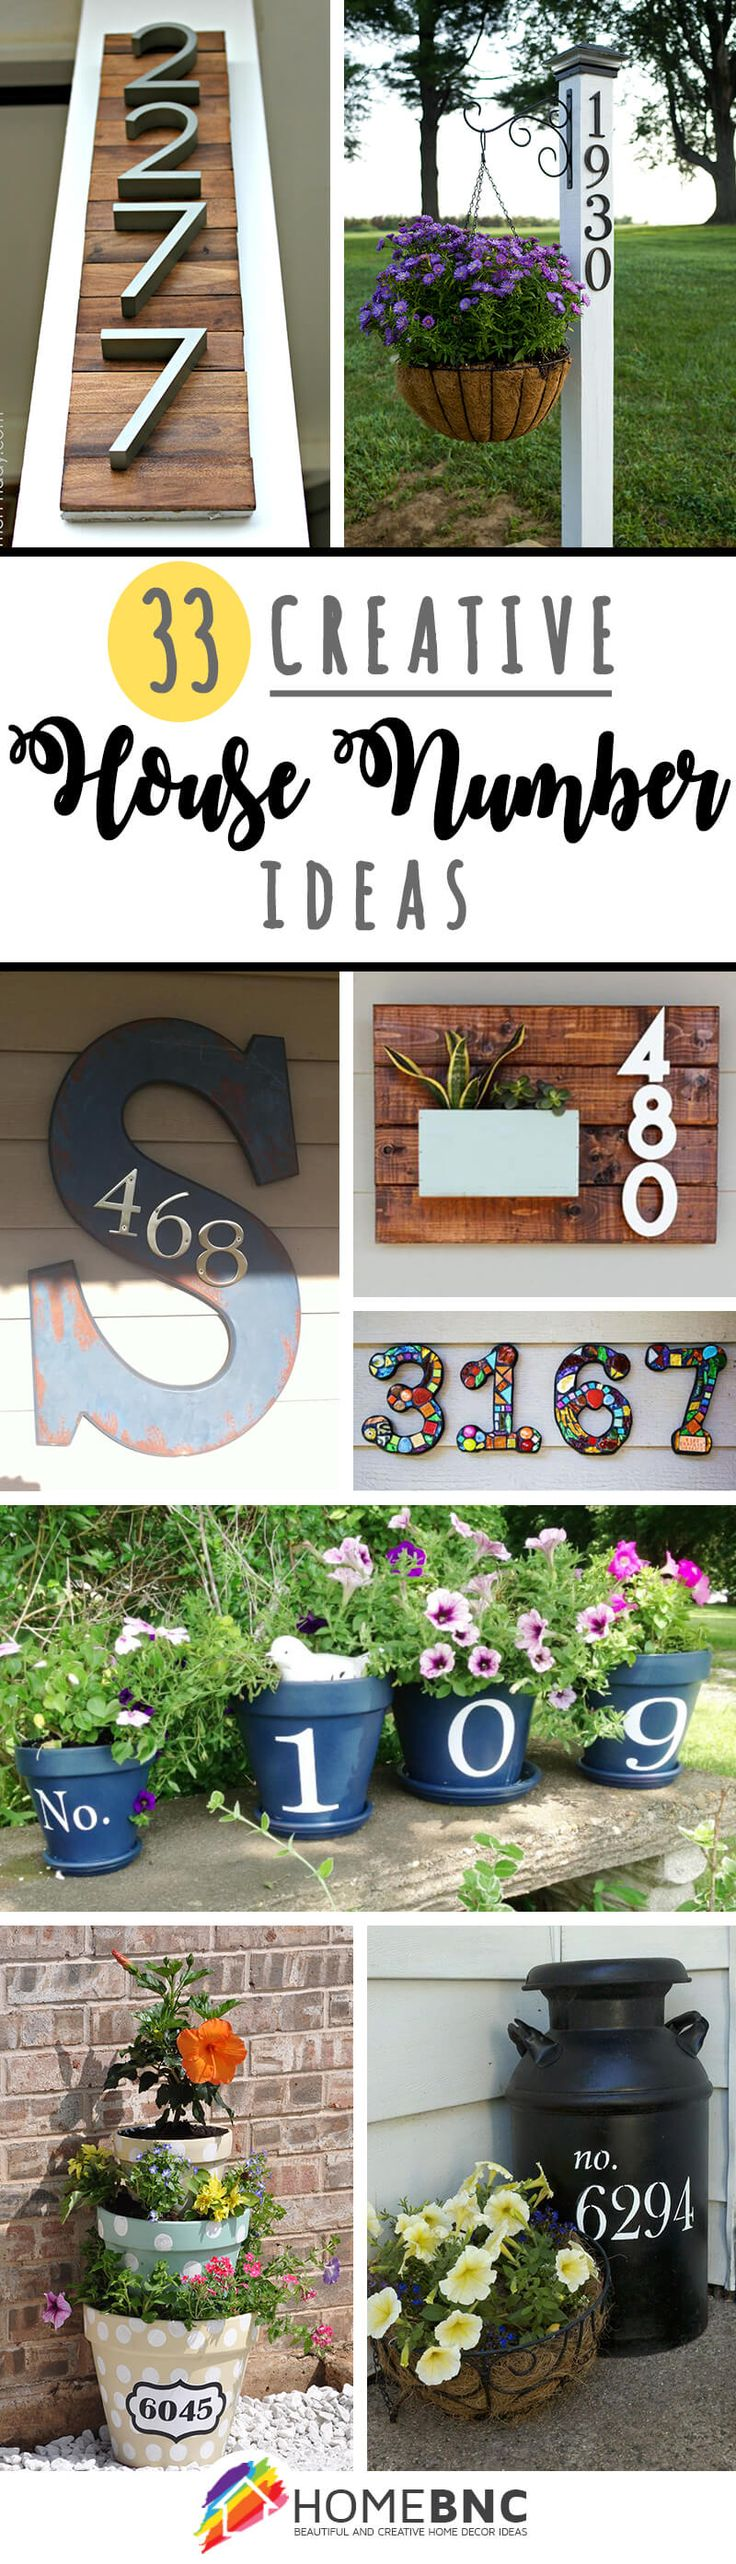 Creative house numbers